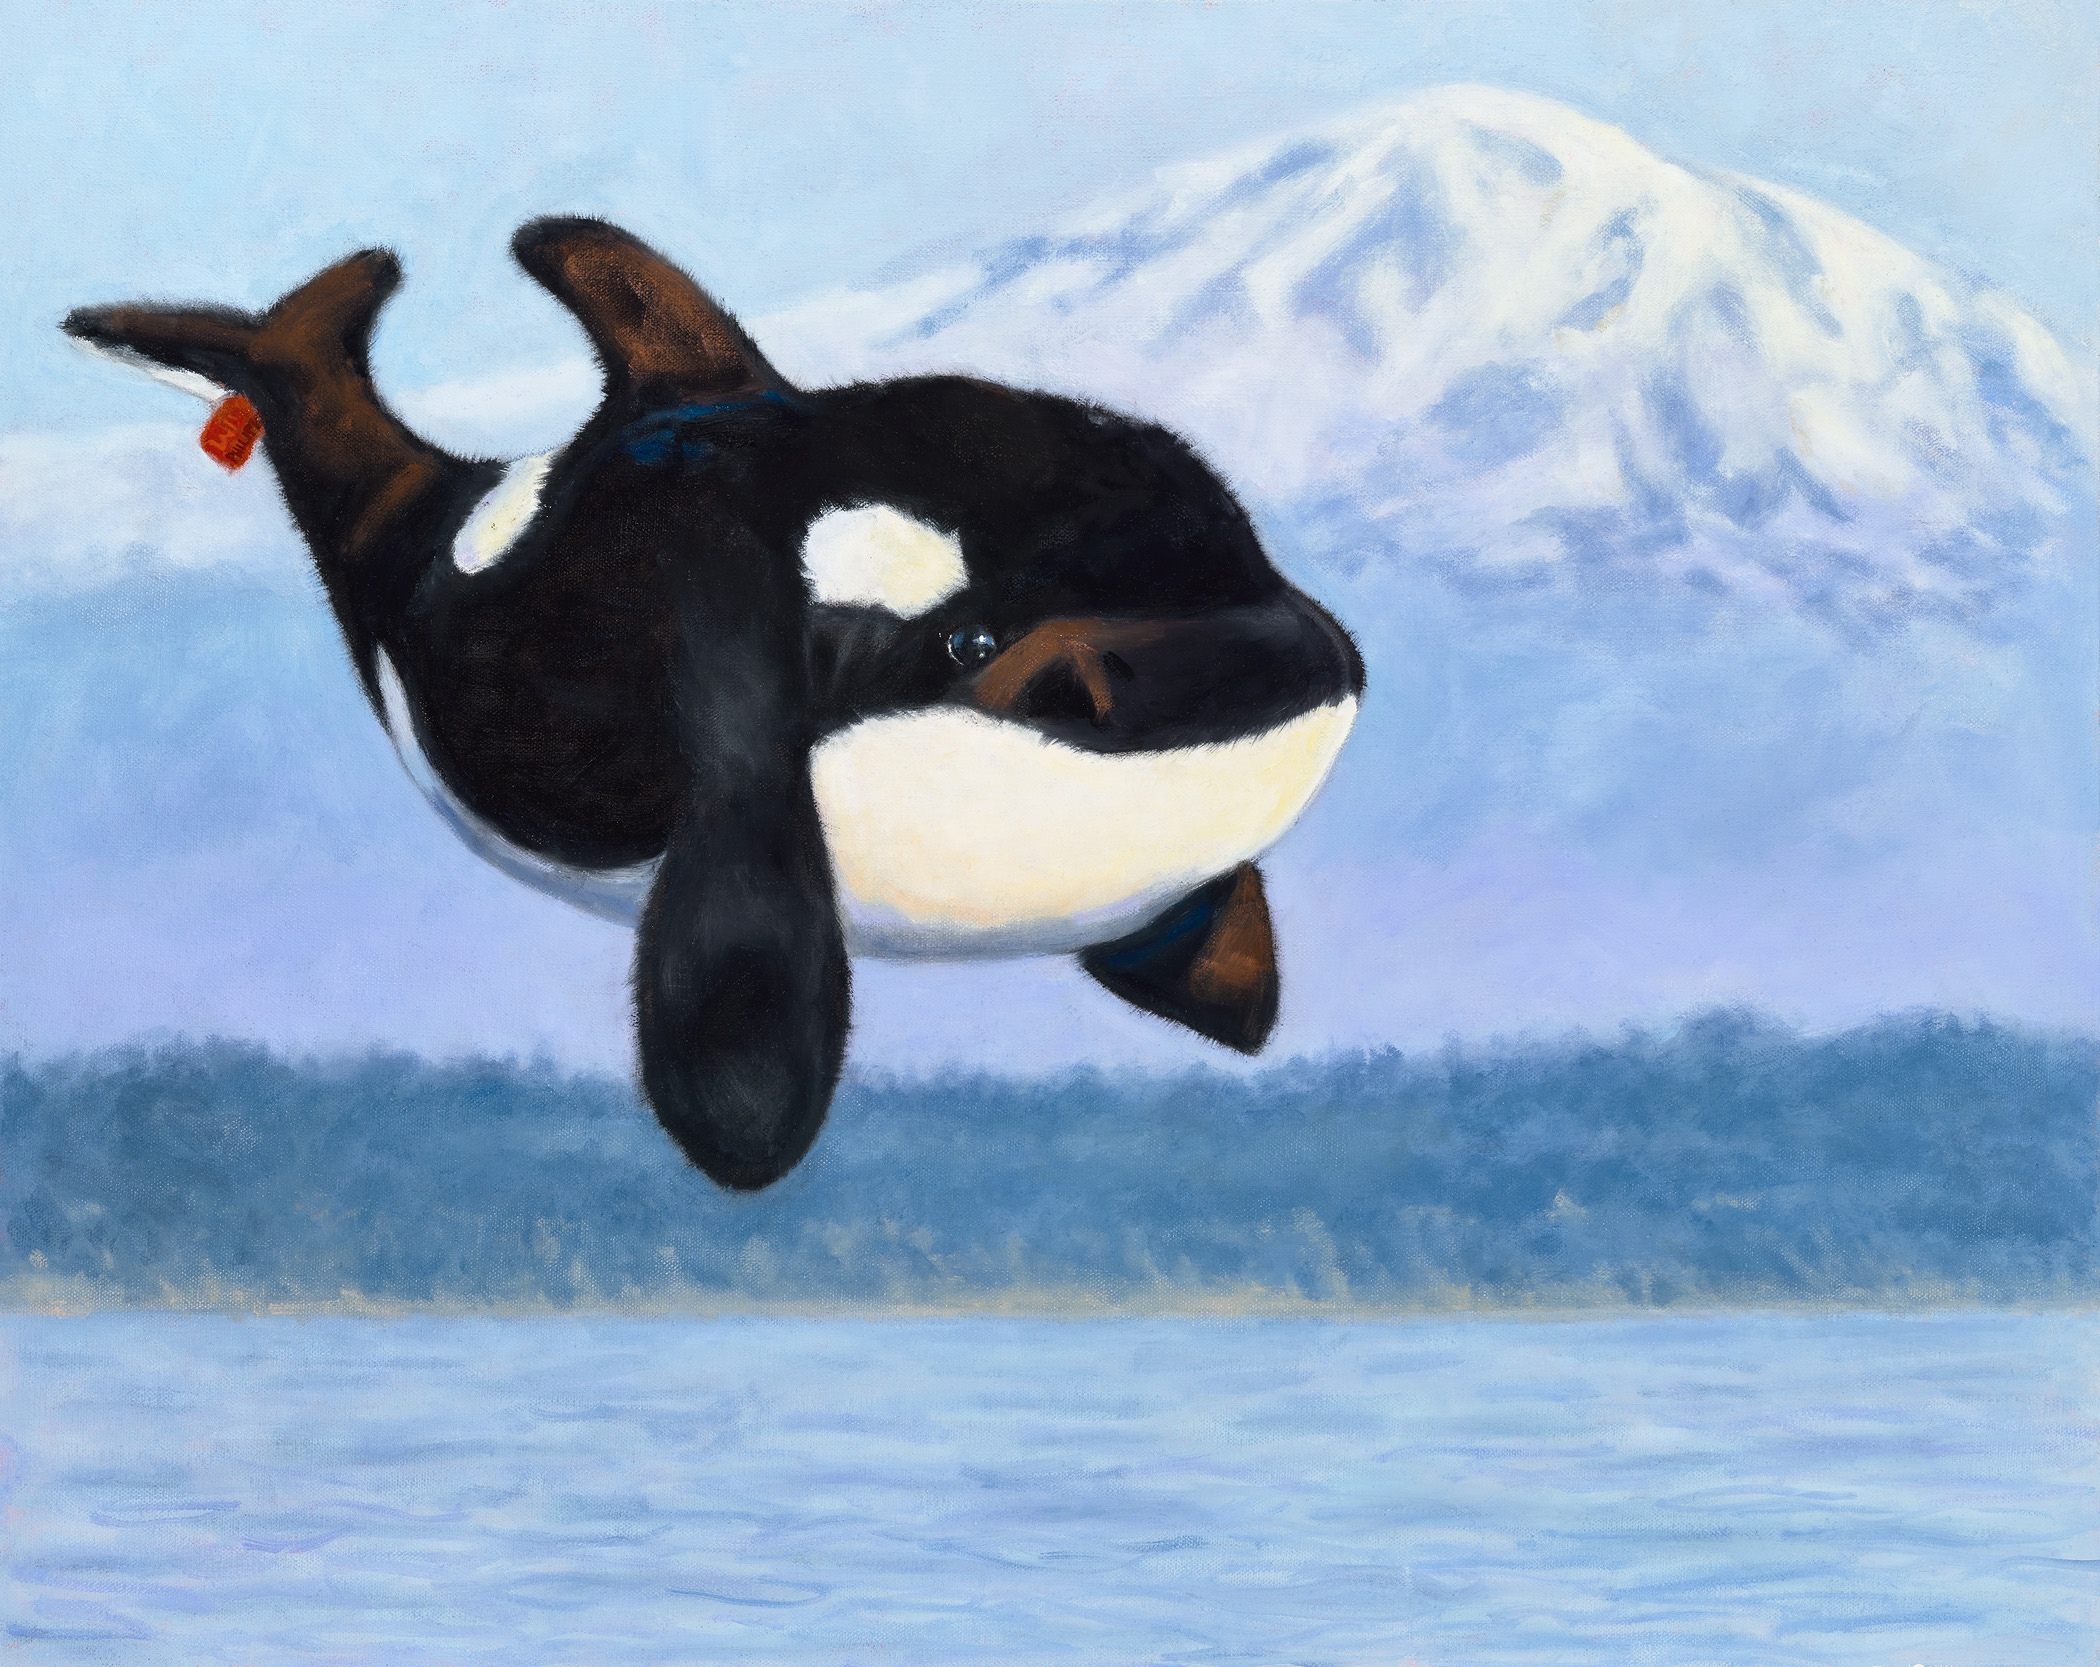 """Last Call: Orcas"", Oil on Gallery Wrapped Canvas, copyright Lisa Philipps, 2019."